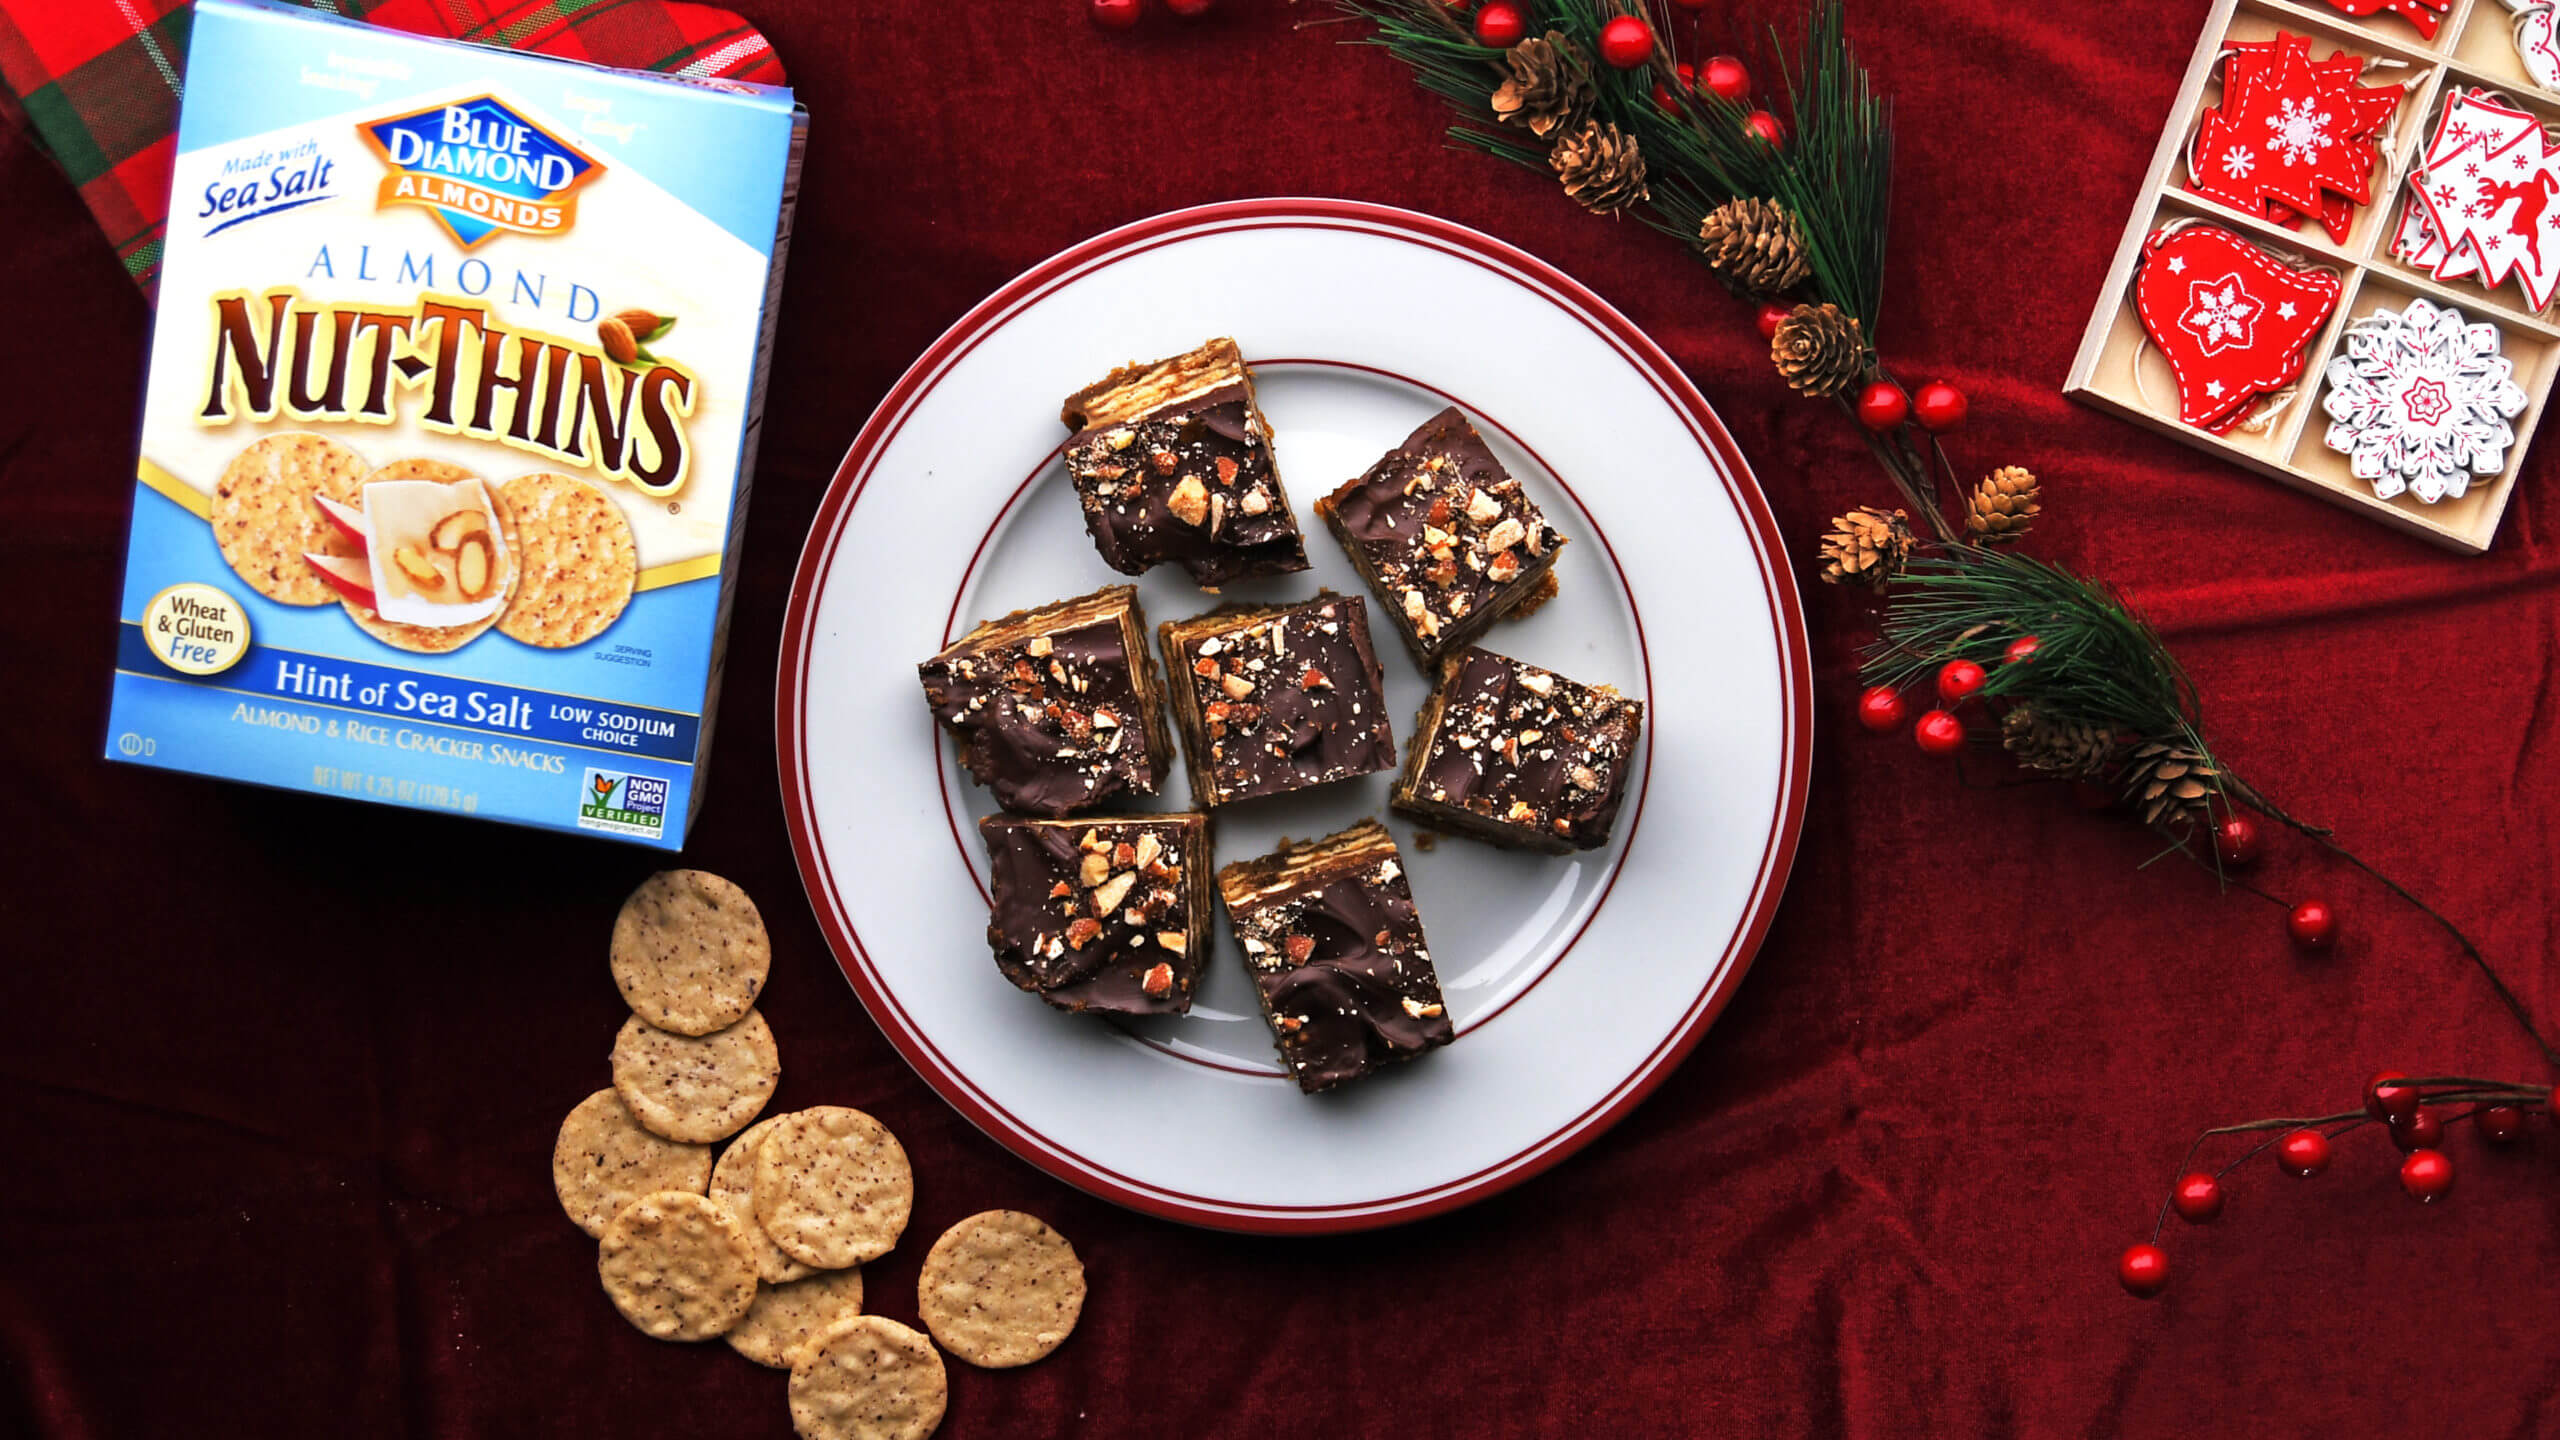 Blue Diamond Almond Nut-Thins® Chocolate Almond Toffee